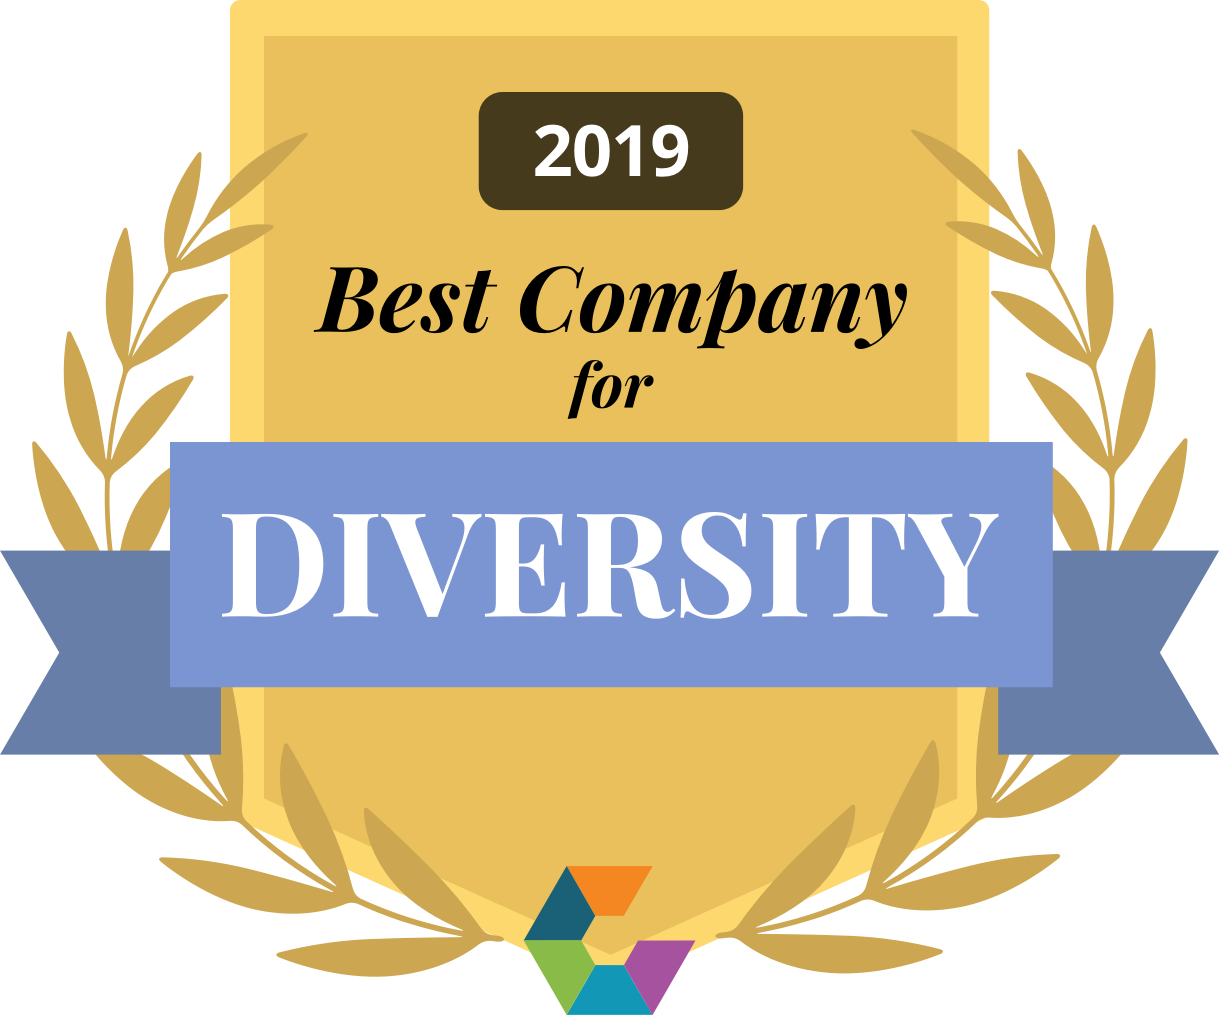 2019 Best Company for Diversity by Comparably